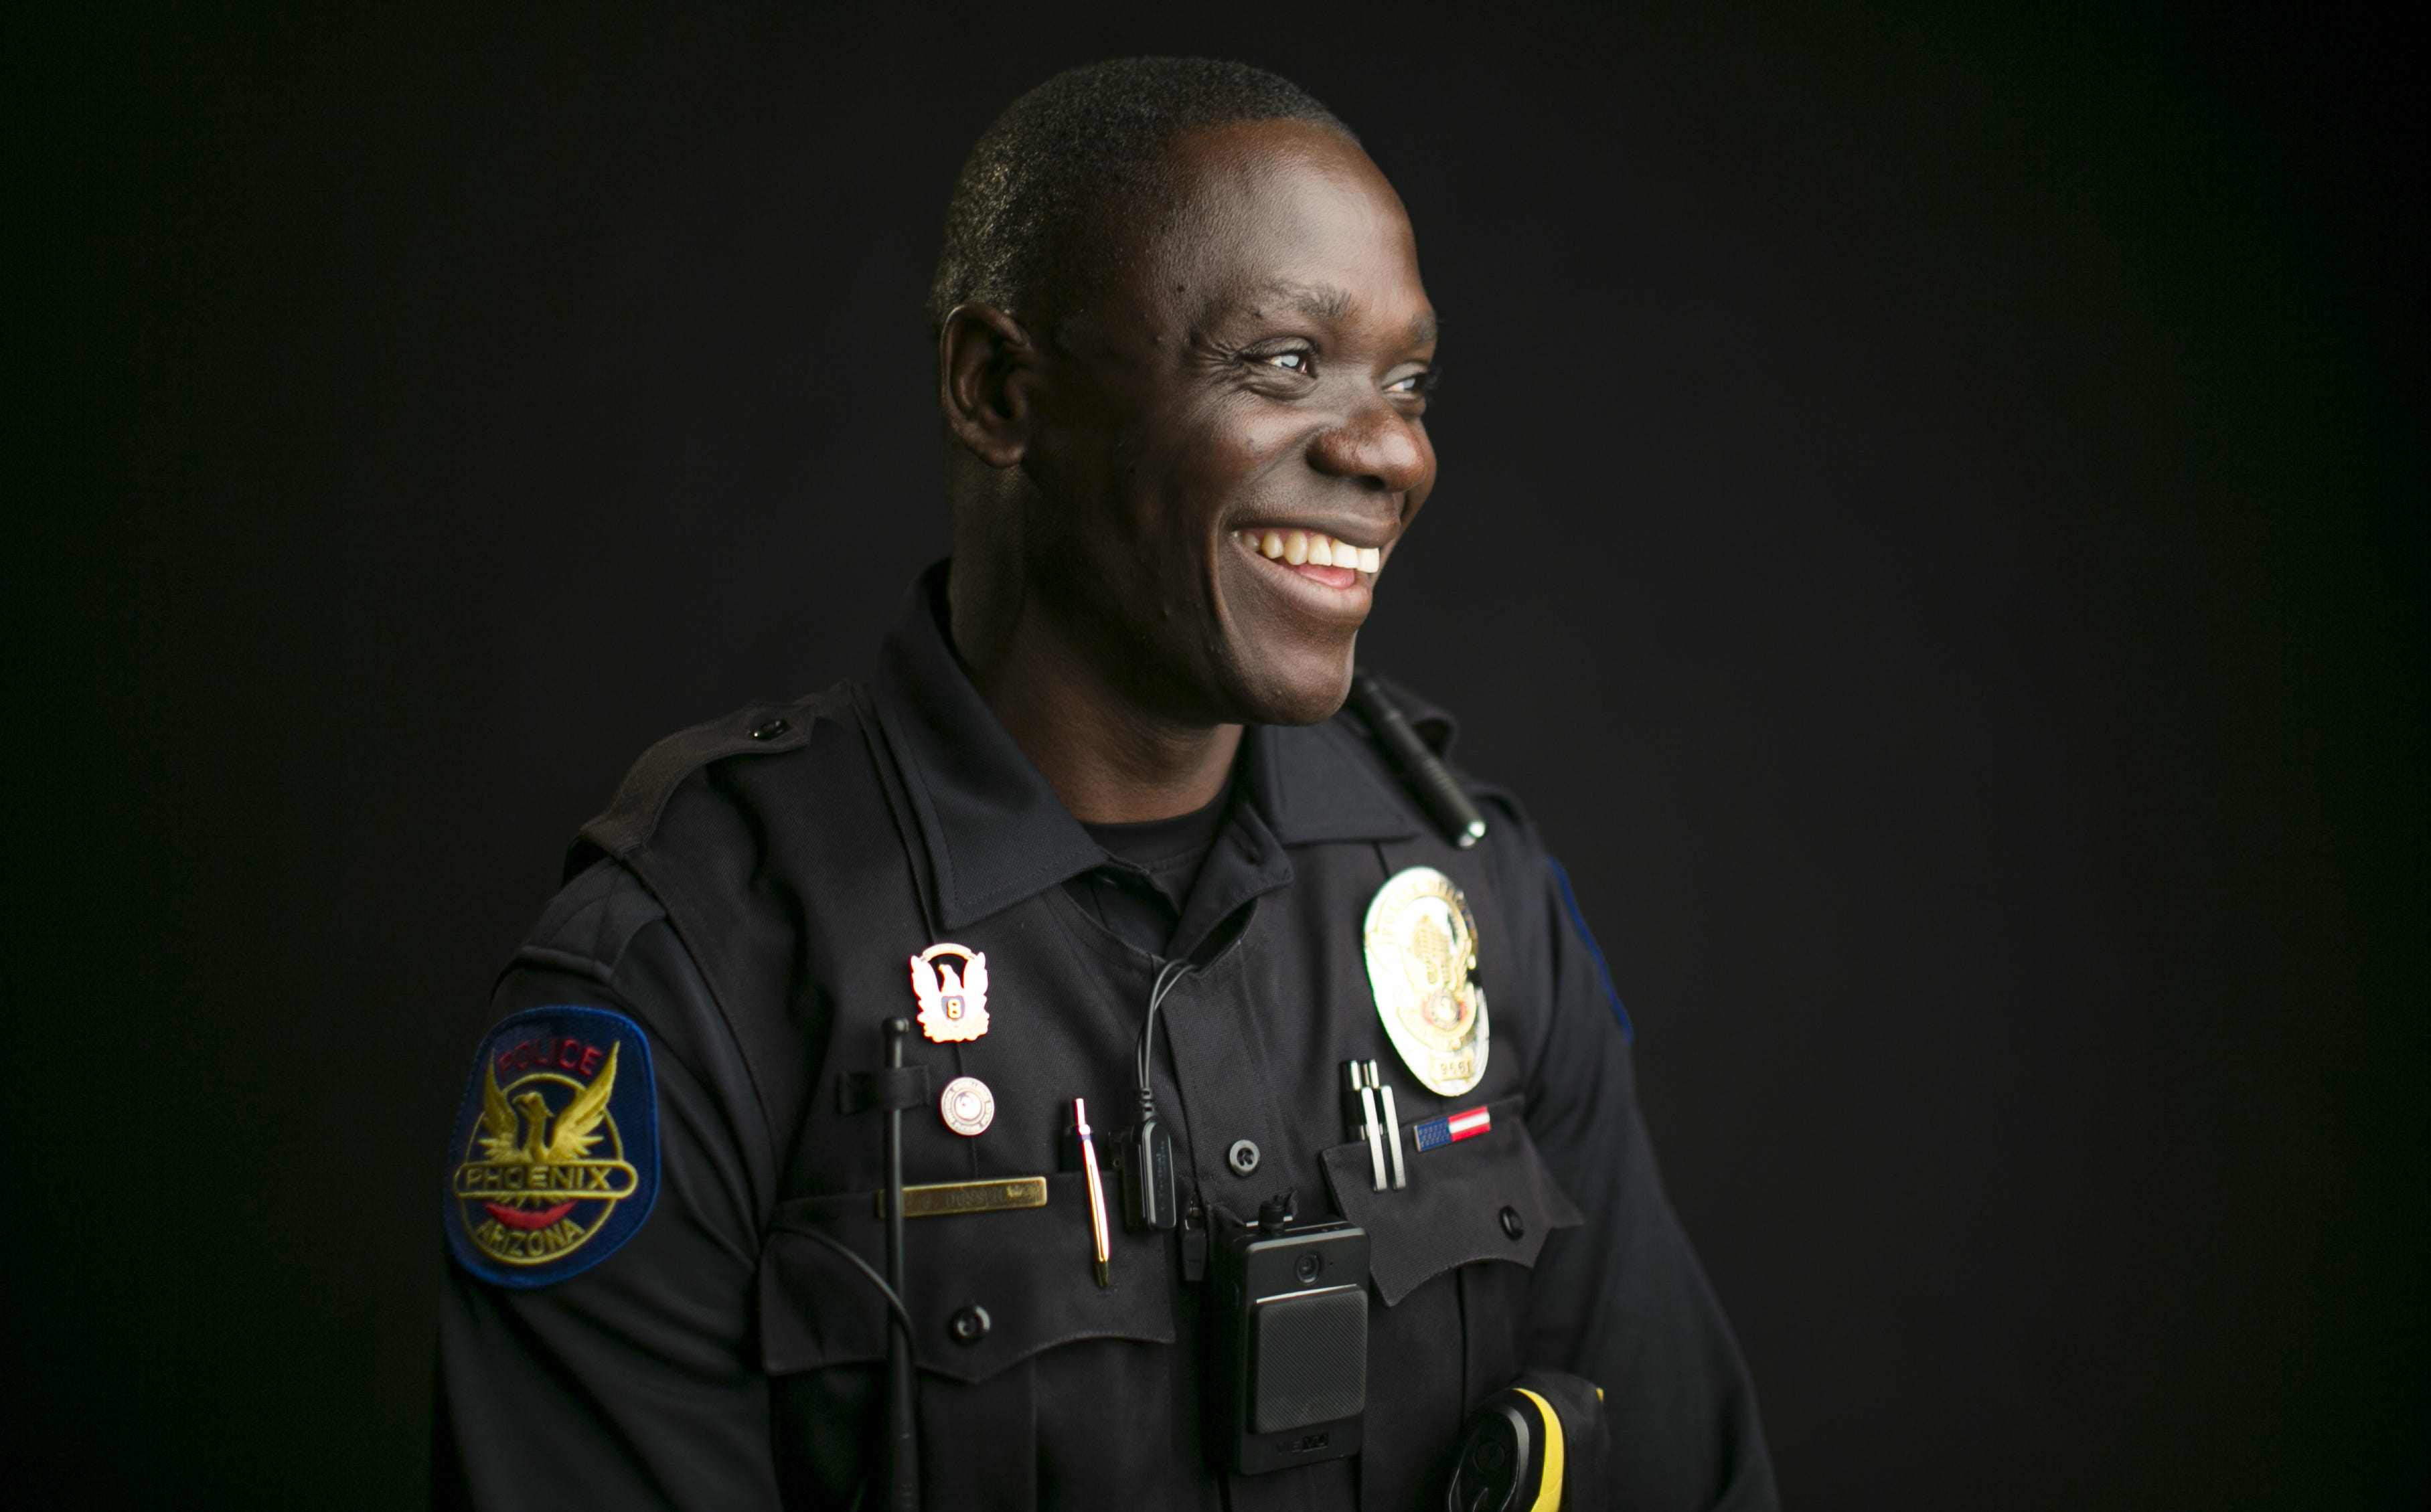 This refugee ran from guns as a kid. Now he carries one with Phoenix police